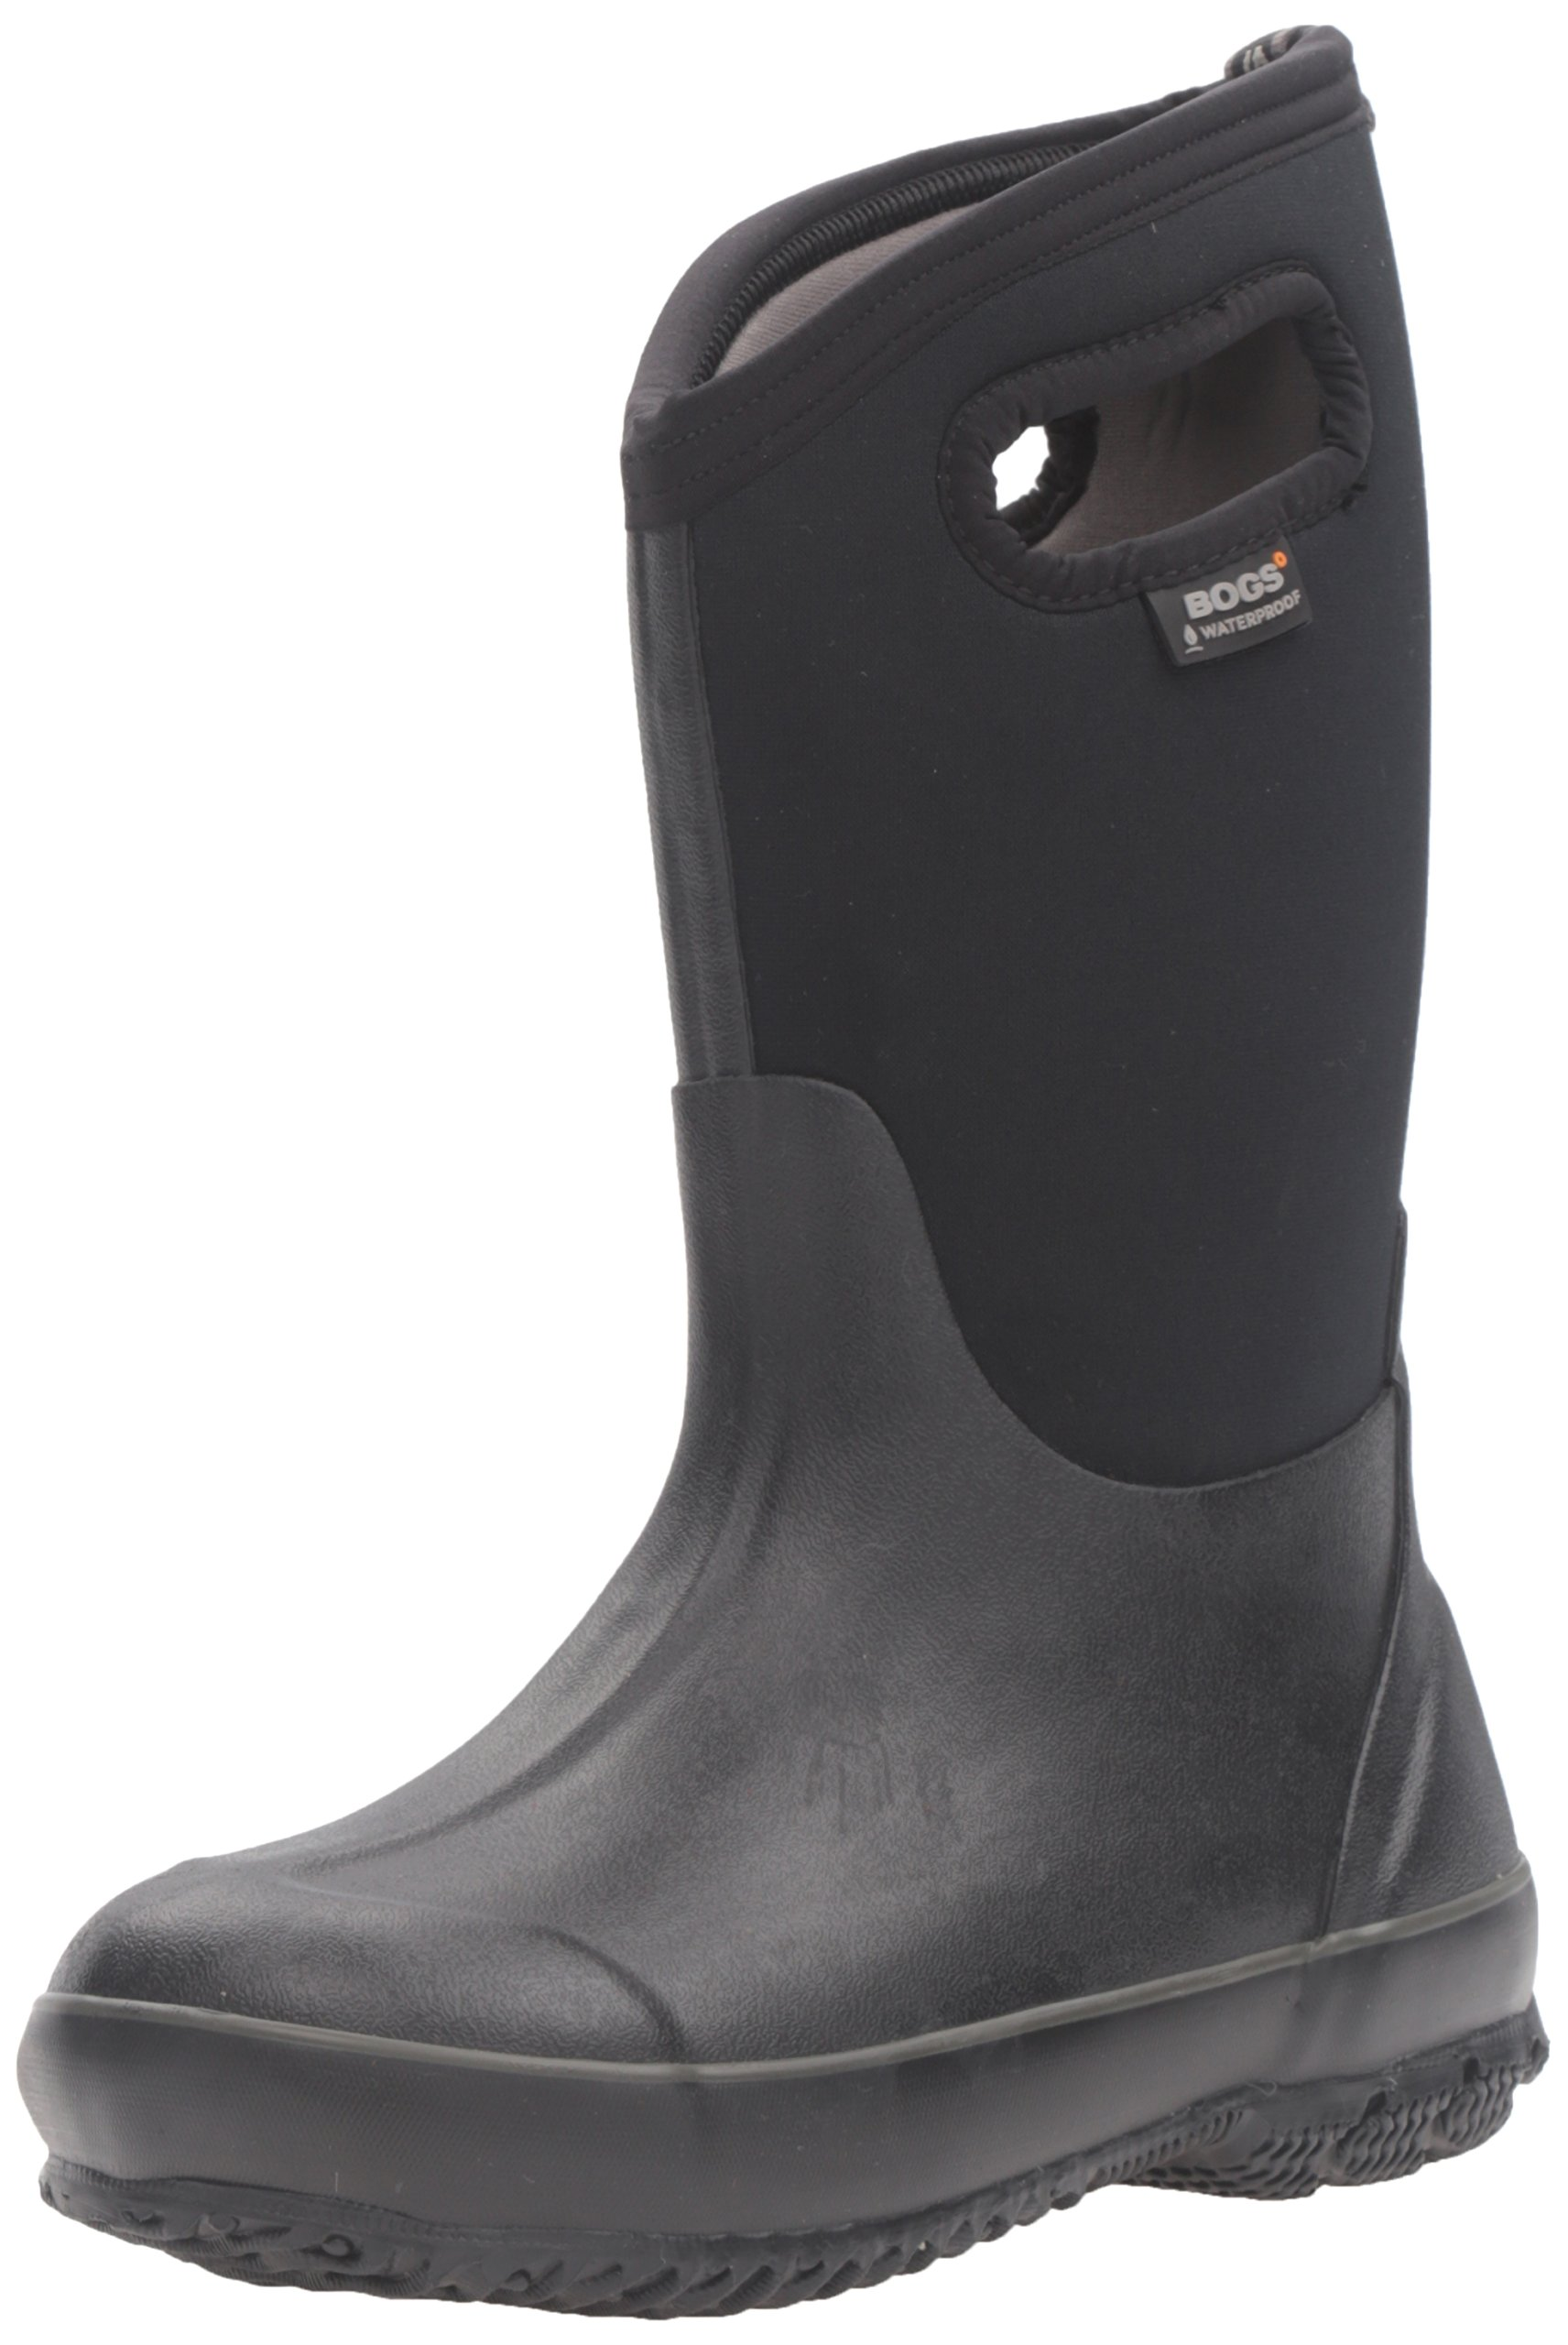 Bogs Classic High Waterproof Insulated Rubber Neoprene Rain Boot, All Black, 3 M US Little Kid